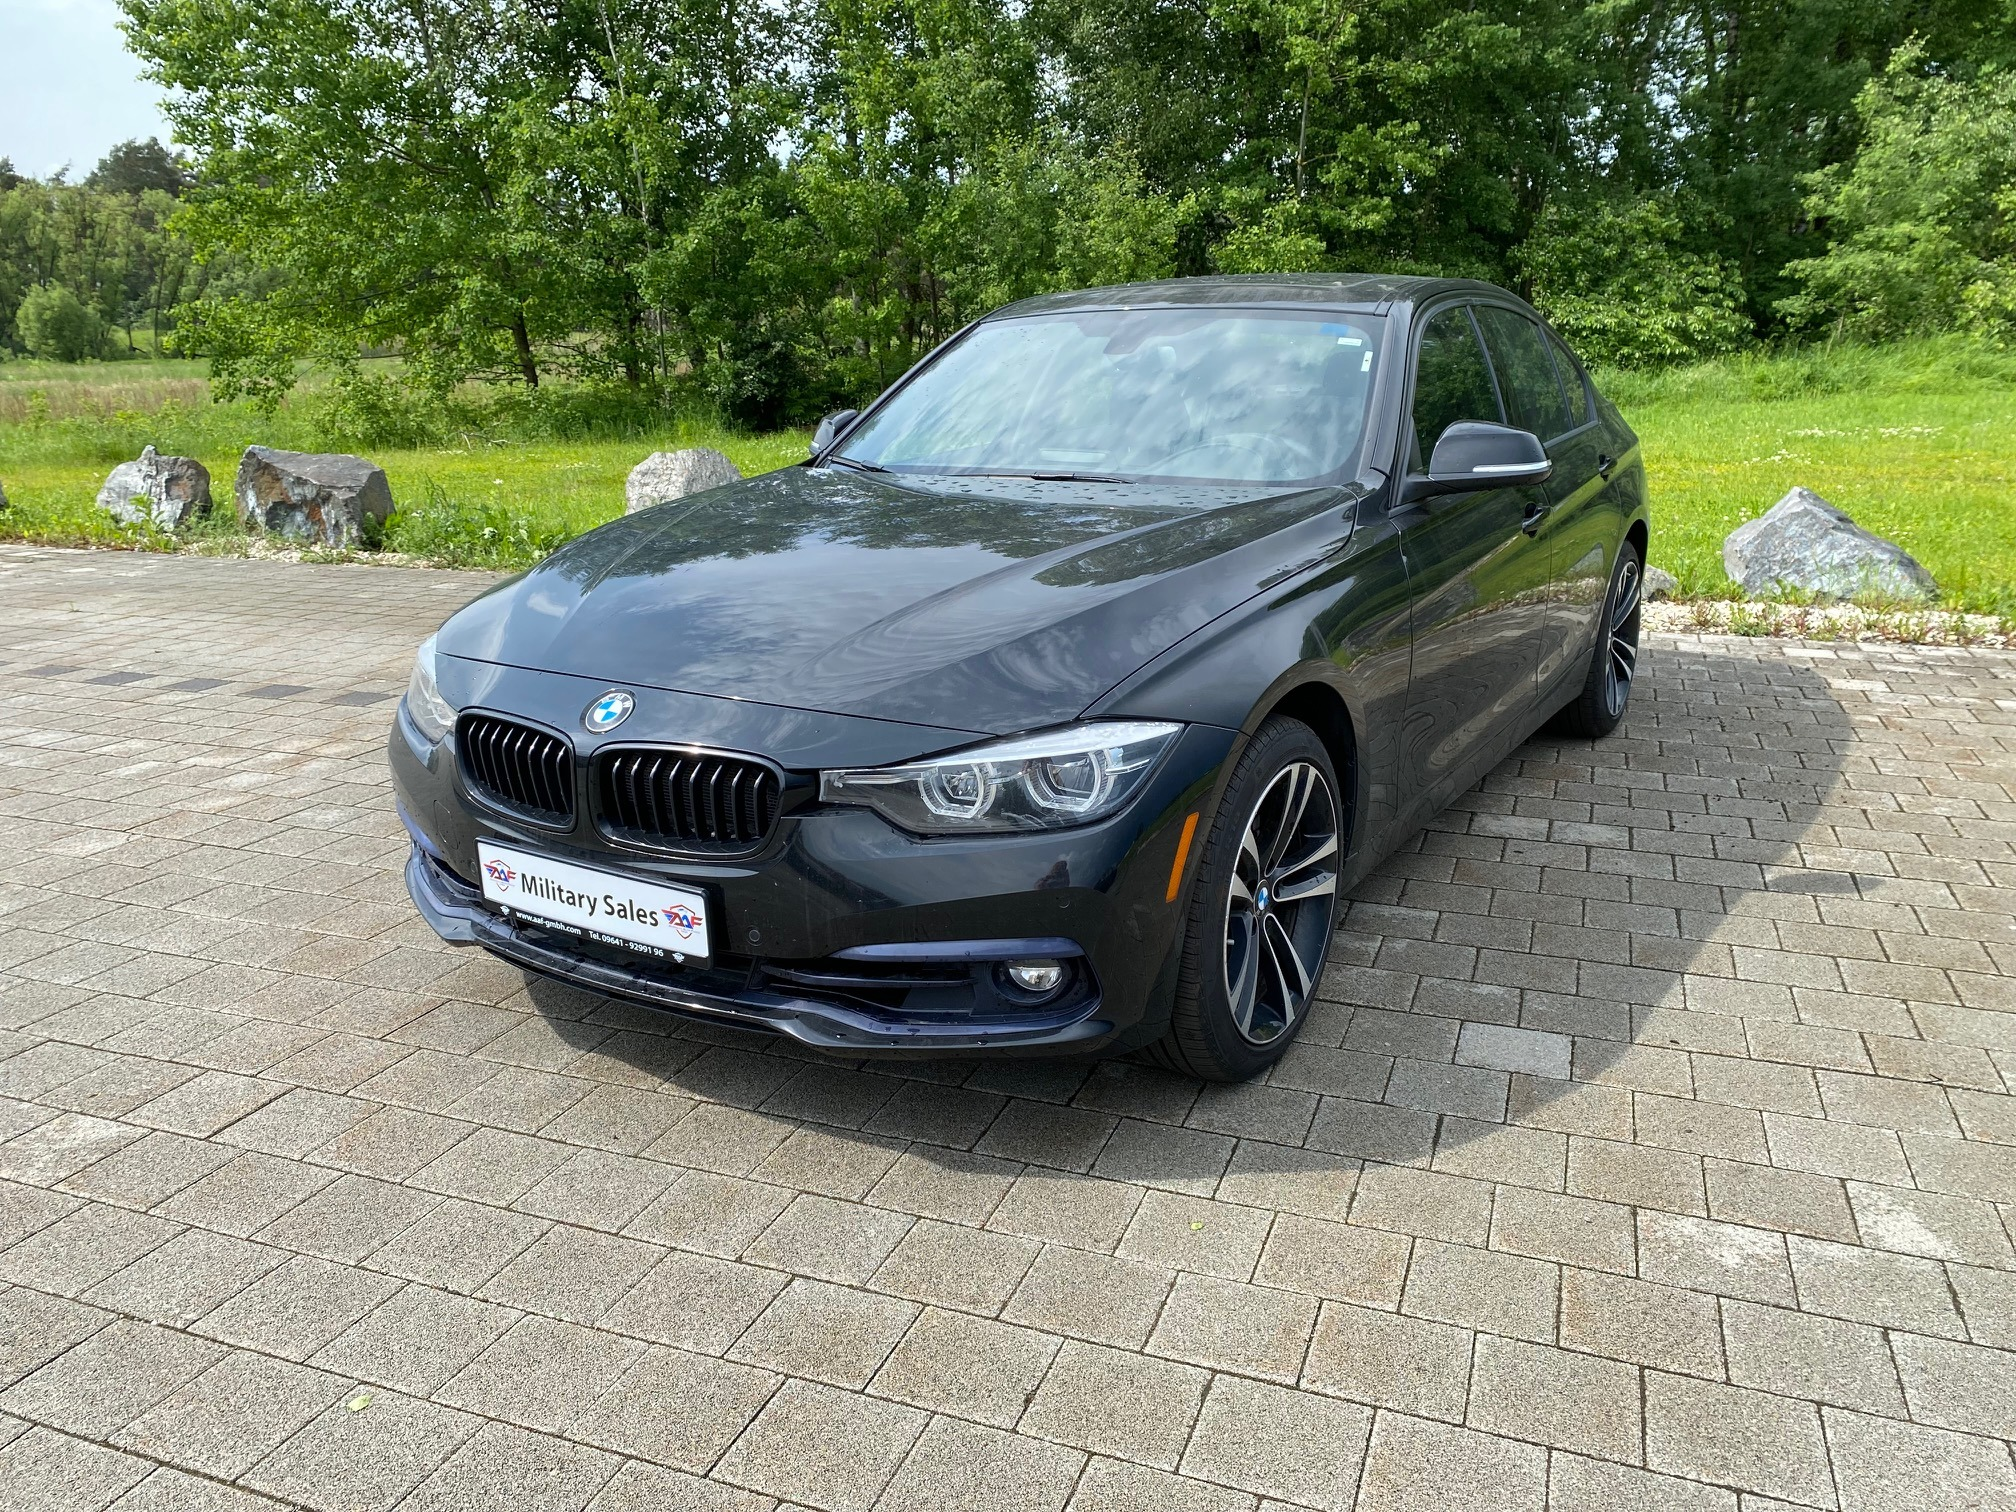 2018 BMW 330i xDrive Sport </br>as low as </br>$219 per paycheck